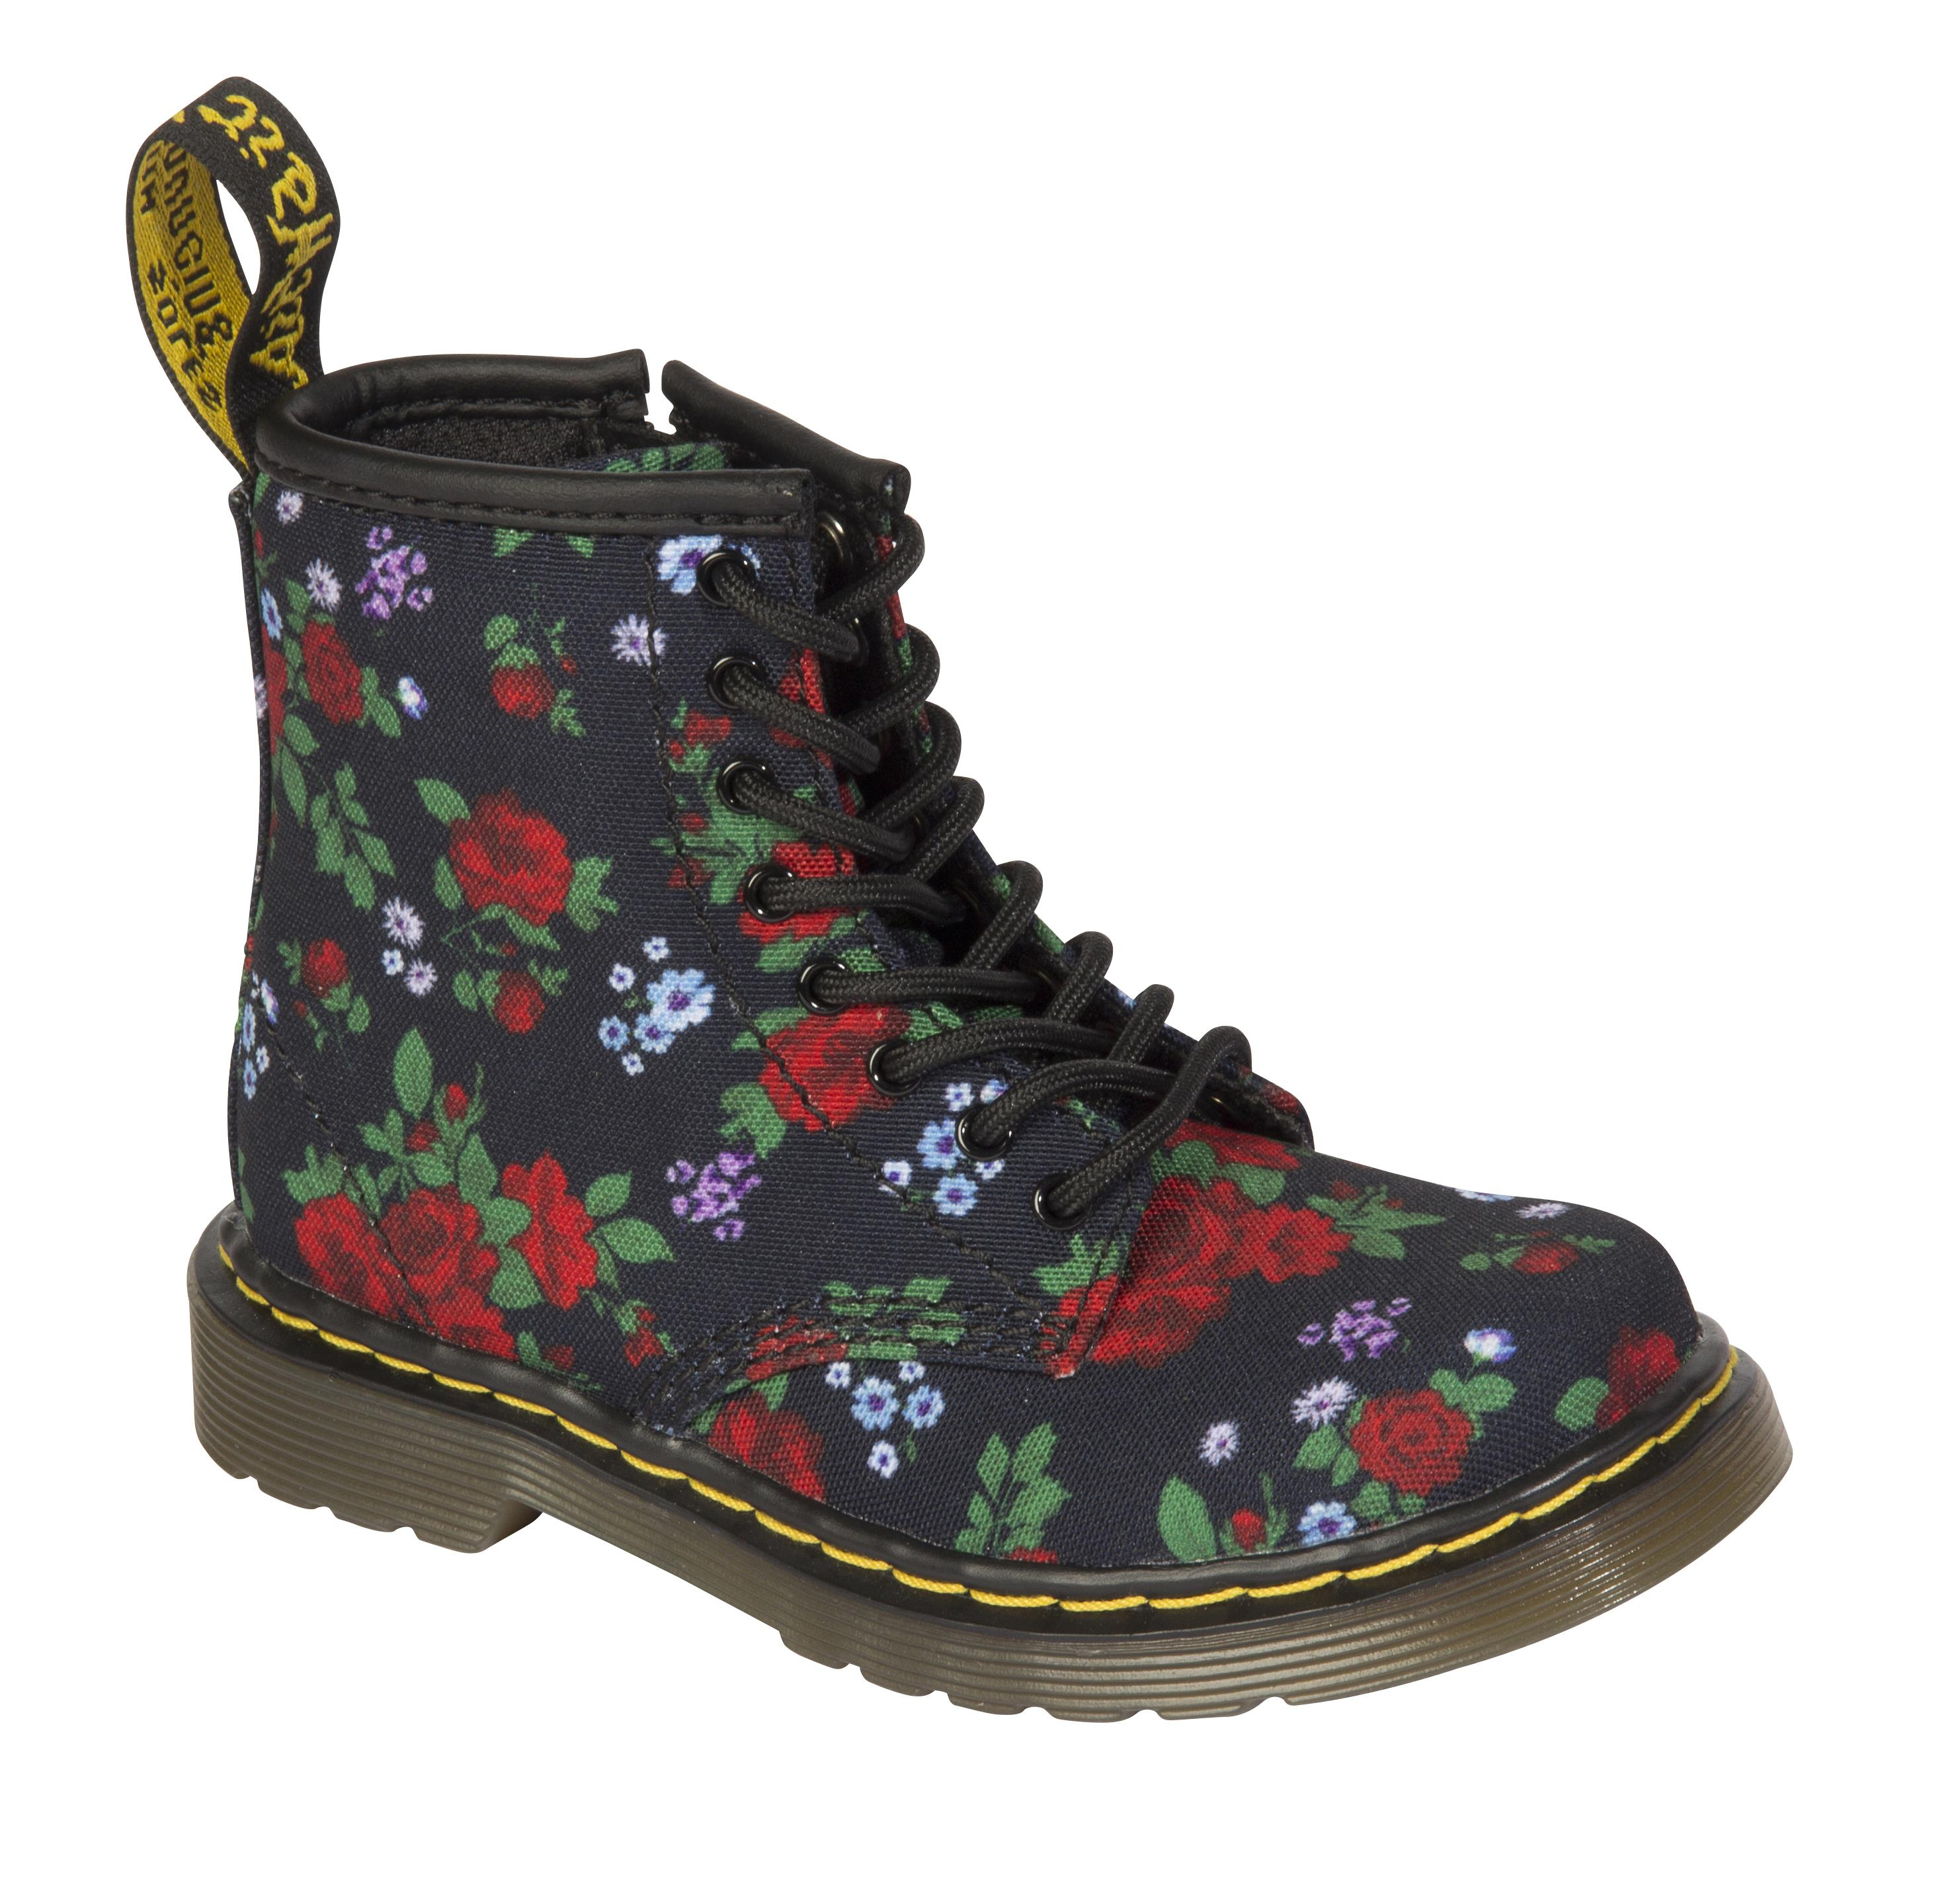 15373415_KIDS_CORE_BROOKLEE_LACE_BOOT_MIDNIGHT_VINTAGE_ROSE_T_CANVAS